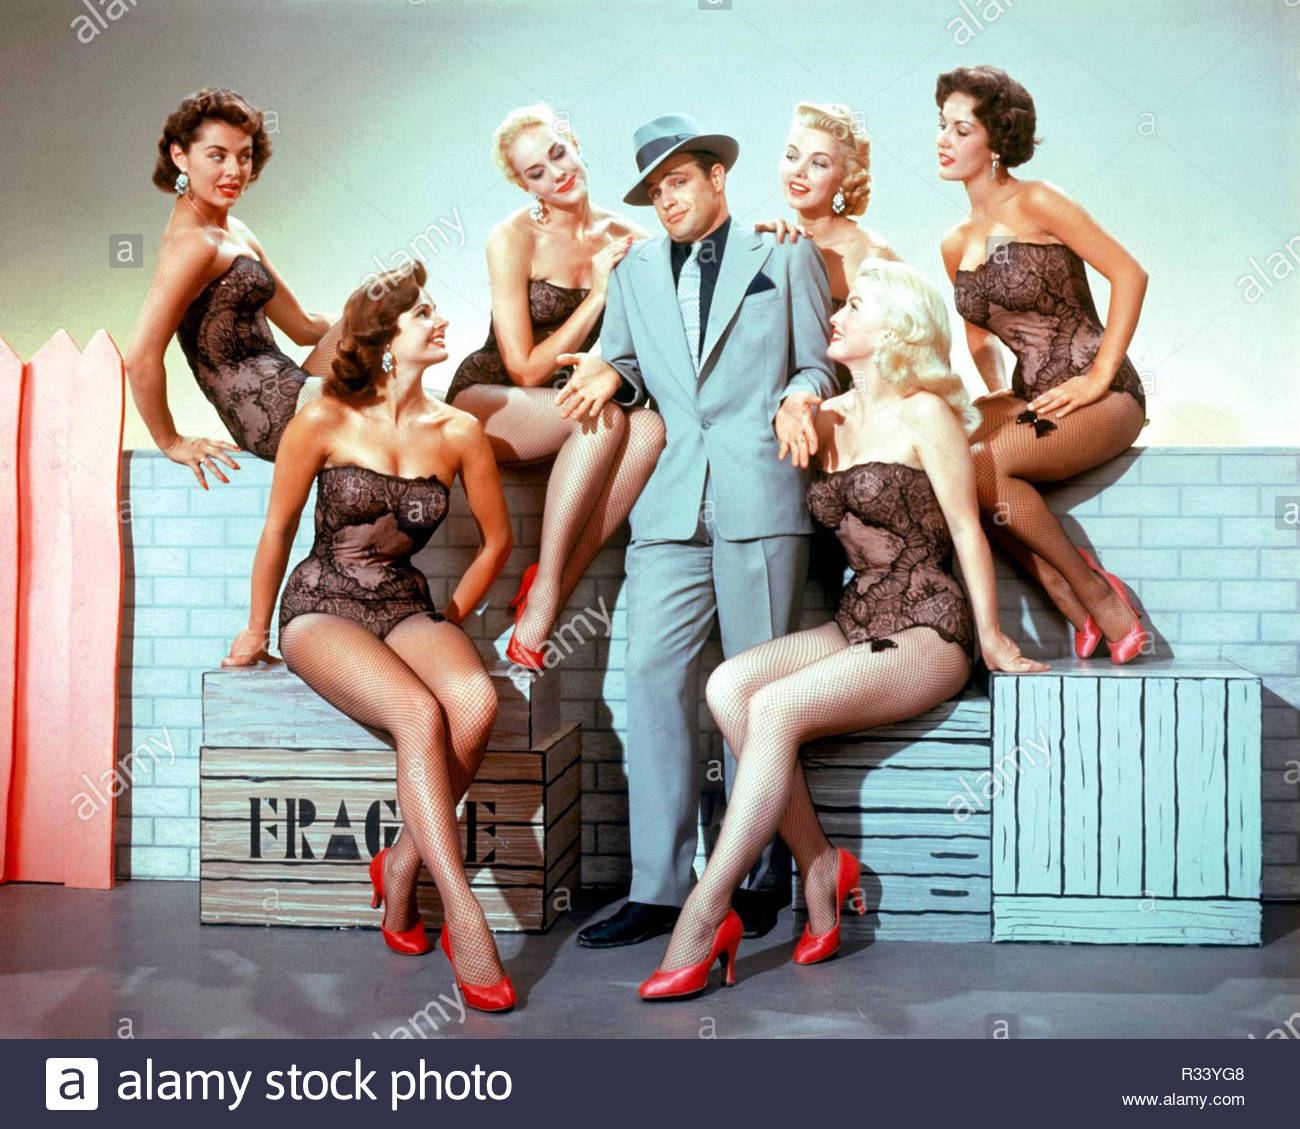 Original film title: GUYS AND DOLLS. English title: GUYS AND DOLLS. Year: 1955. Director: JOSEPH L. MANKIEWICZ. Stars: MARLON BRANDO. Credit: M.G.M/SAMUEL GOLDWYN / Album - Stock Image